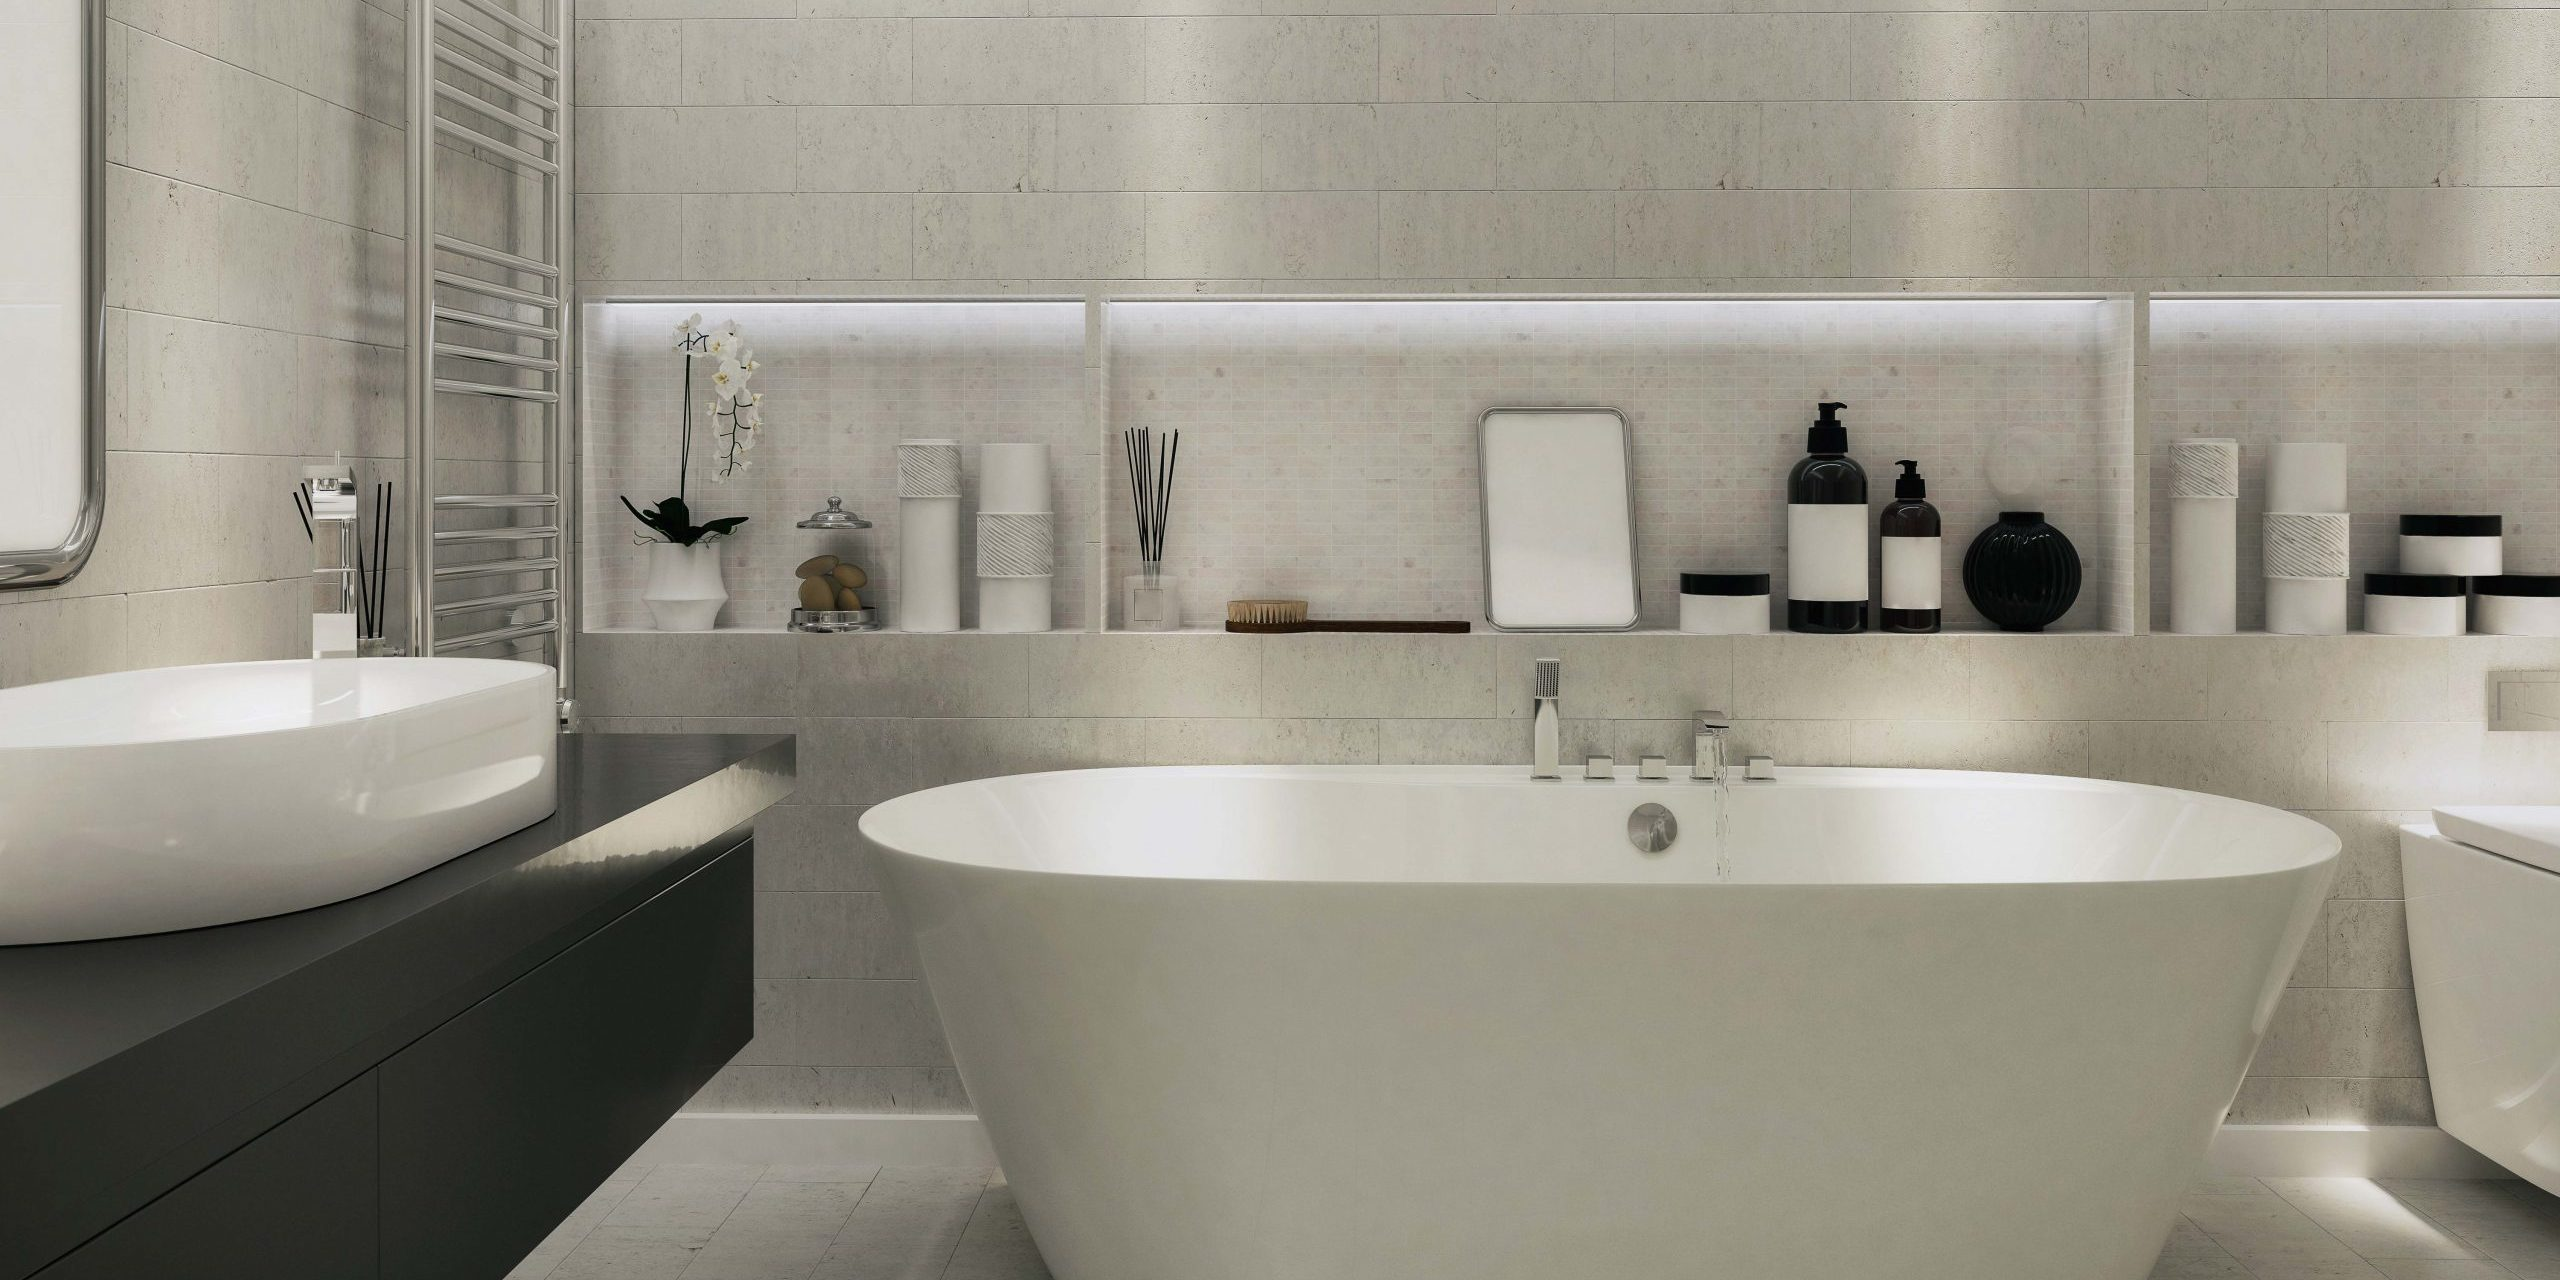 Bathrooms Milton Keynes | Bathrooms In Milton Keynes